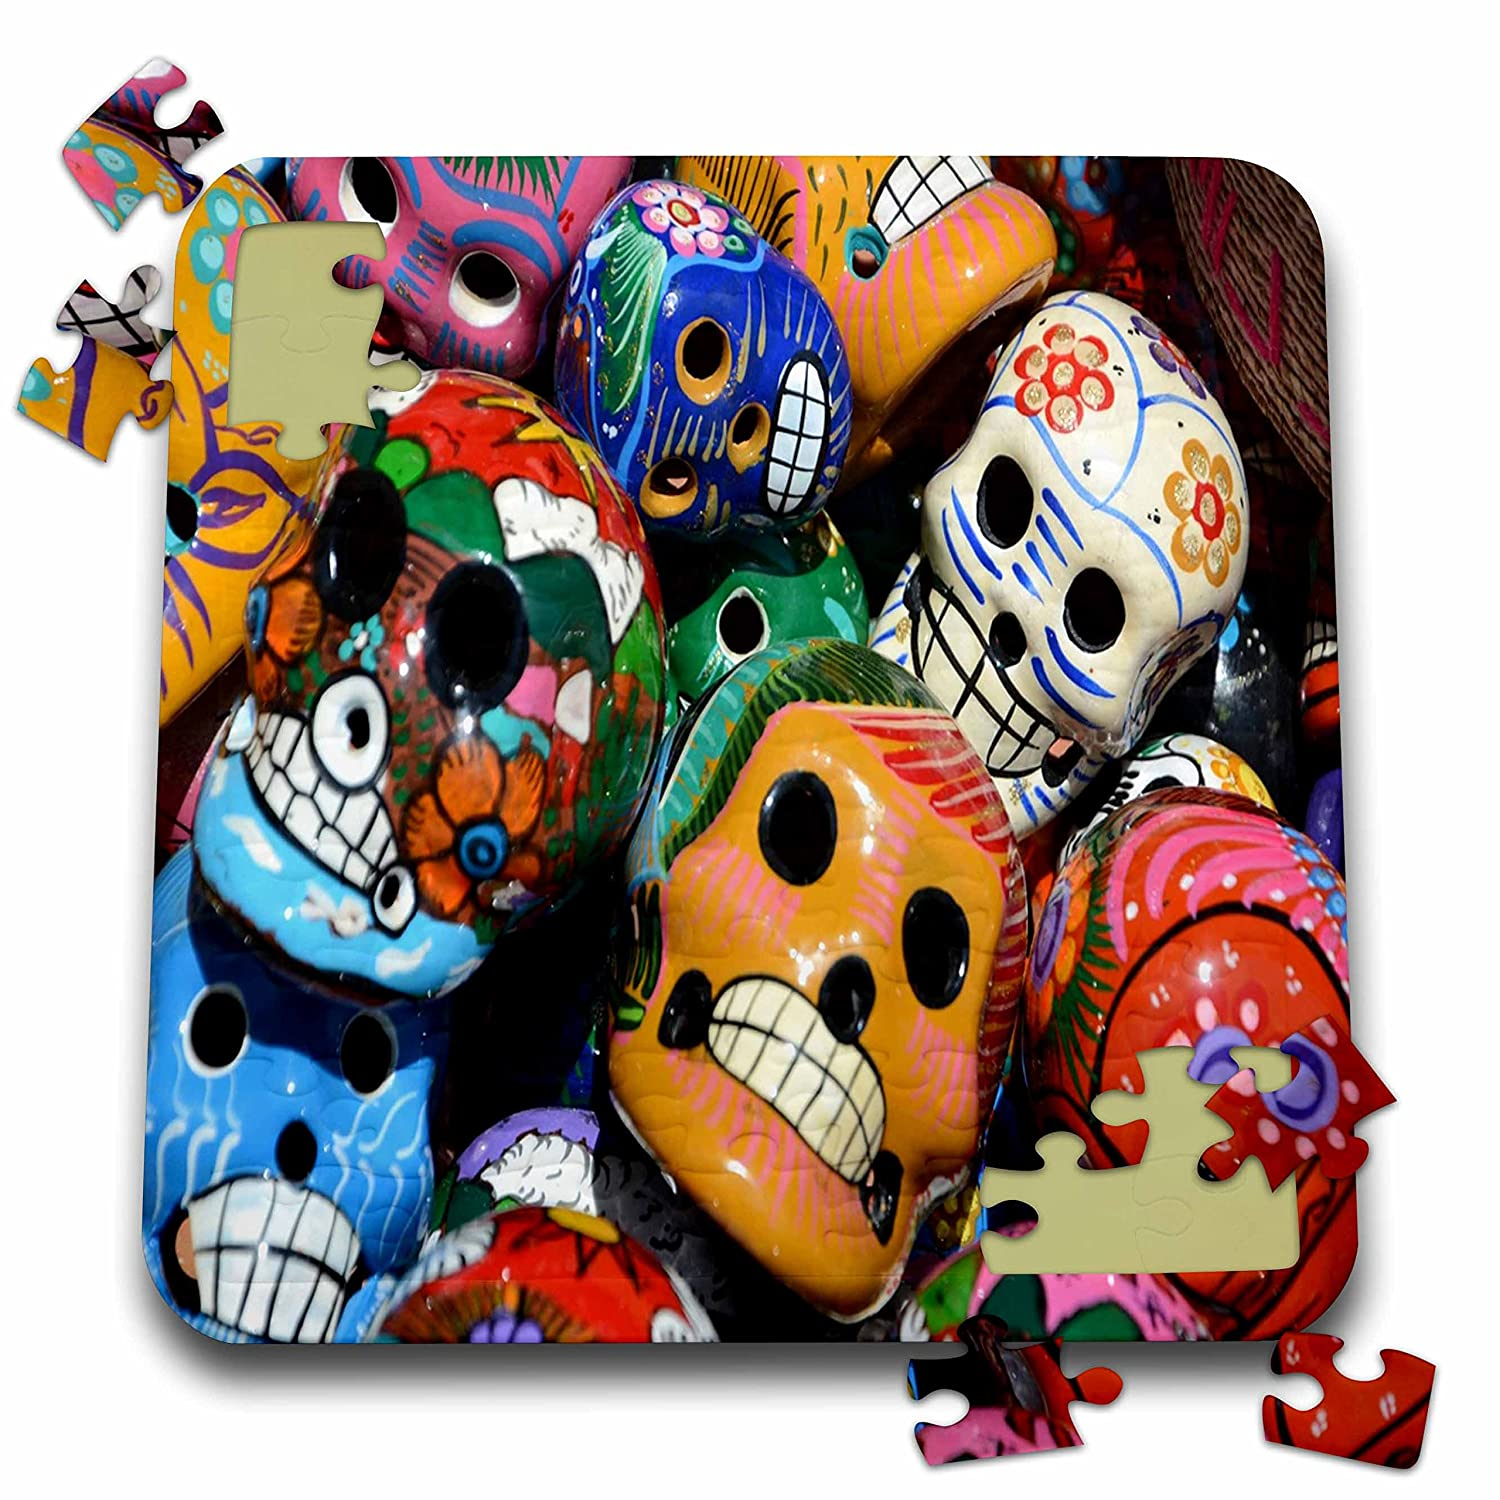 All Things Mexican - Image of Collection Of Day Of The Dead Skulls - 10x10 Inch Puzzle (pzl_255510_2)